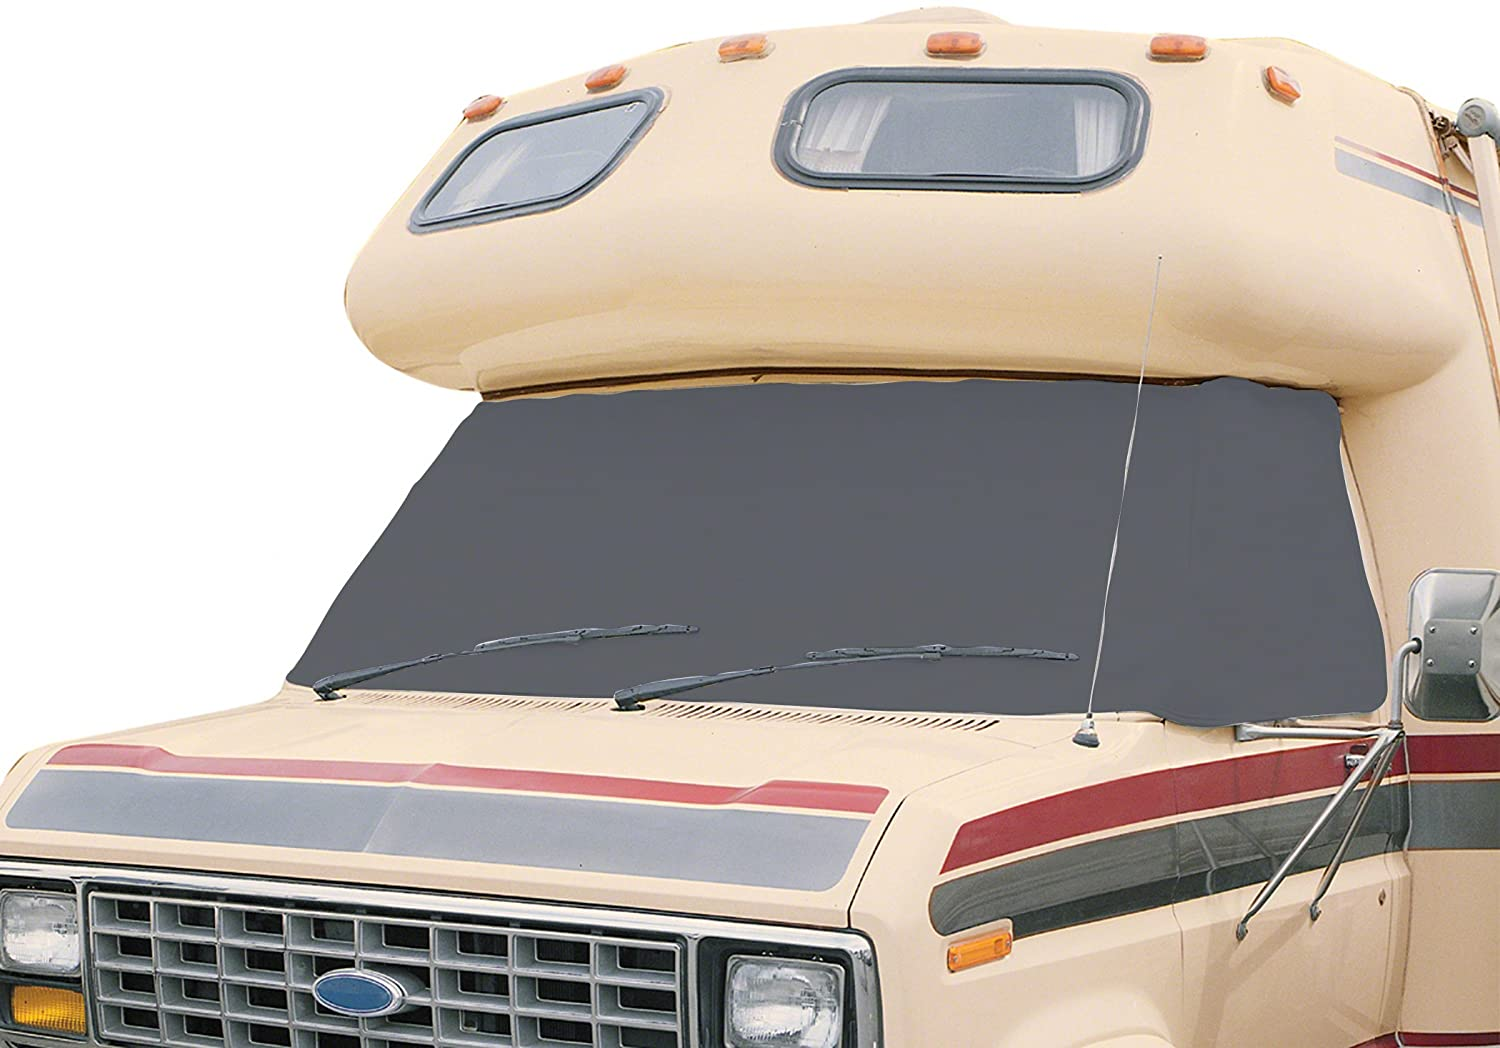 Classic Accessories 80-074-141001-00 OverDrive RV Windshield Cover, Grey, for Chevy/GMC '73-'96 for Chevy/GMC ' 73-' 96 CLA-80-074-141001-00